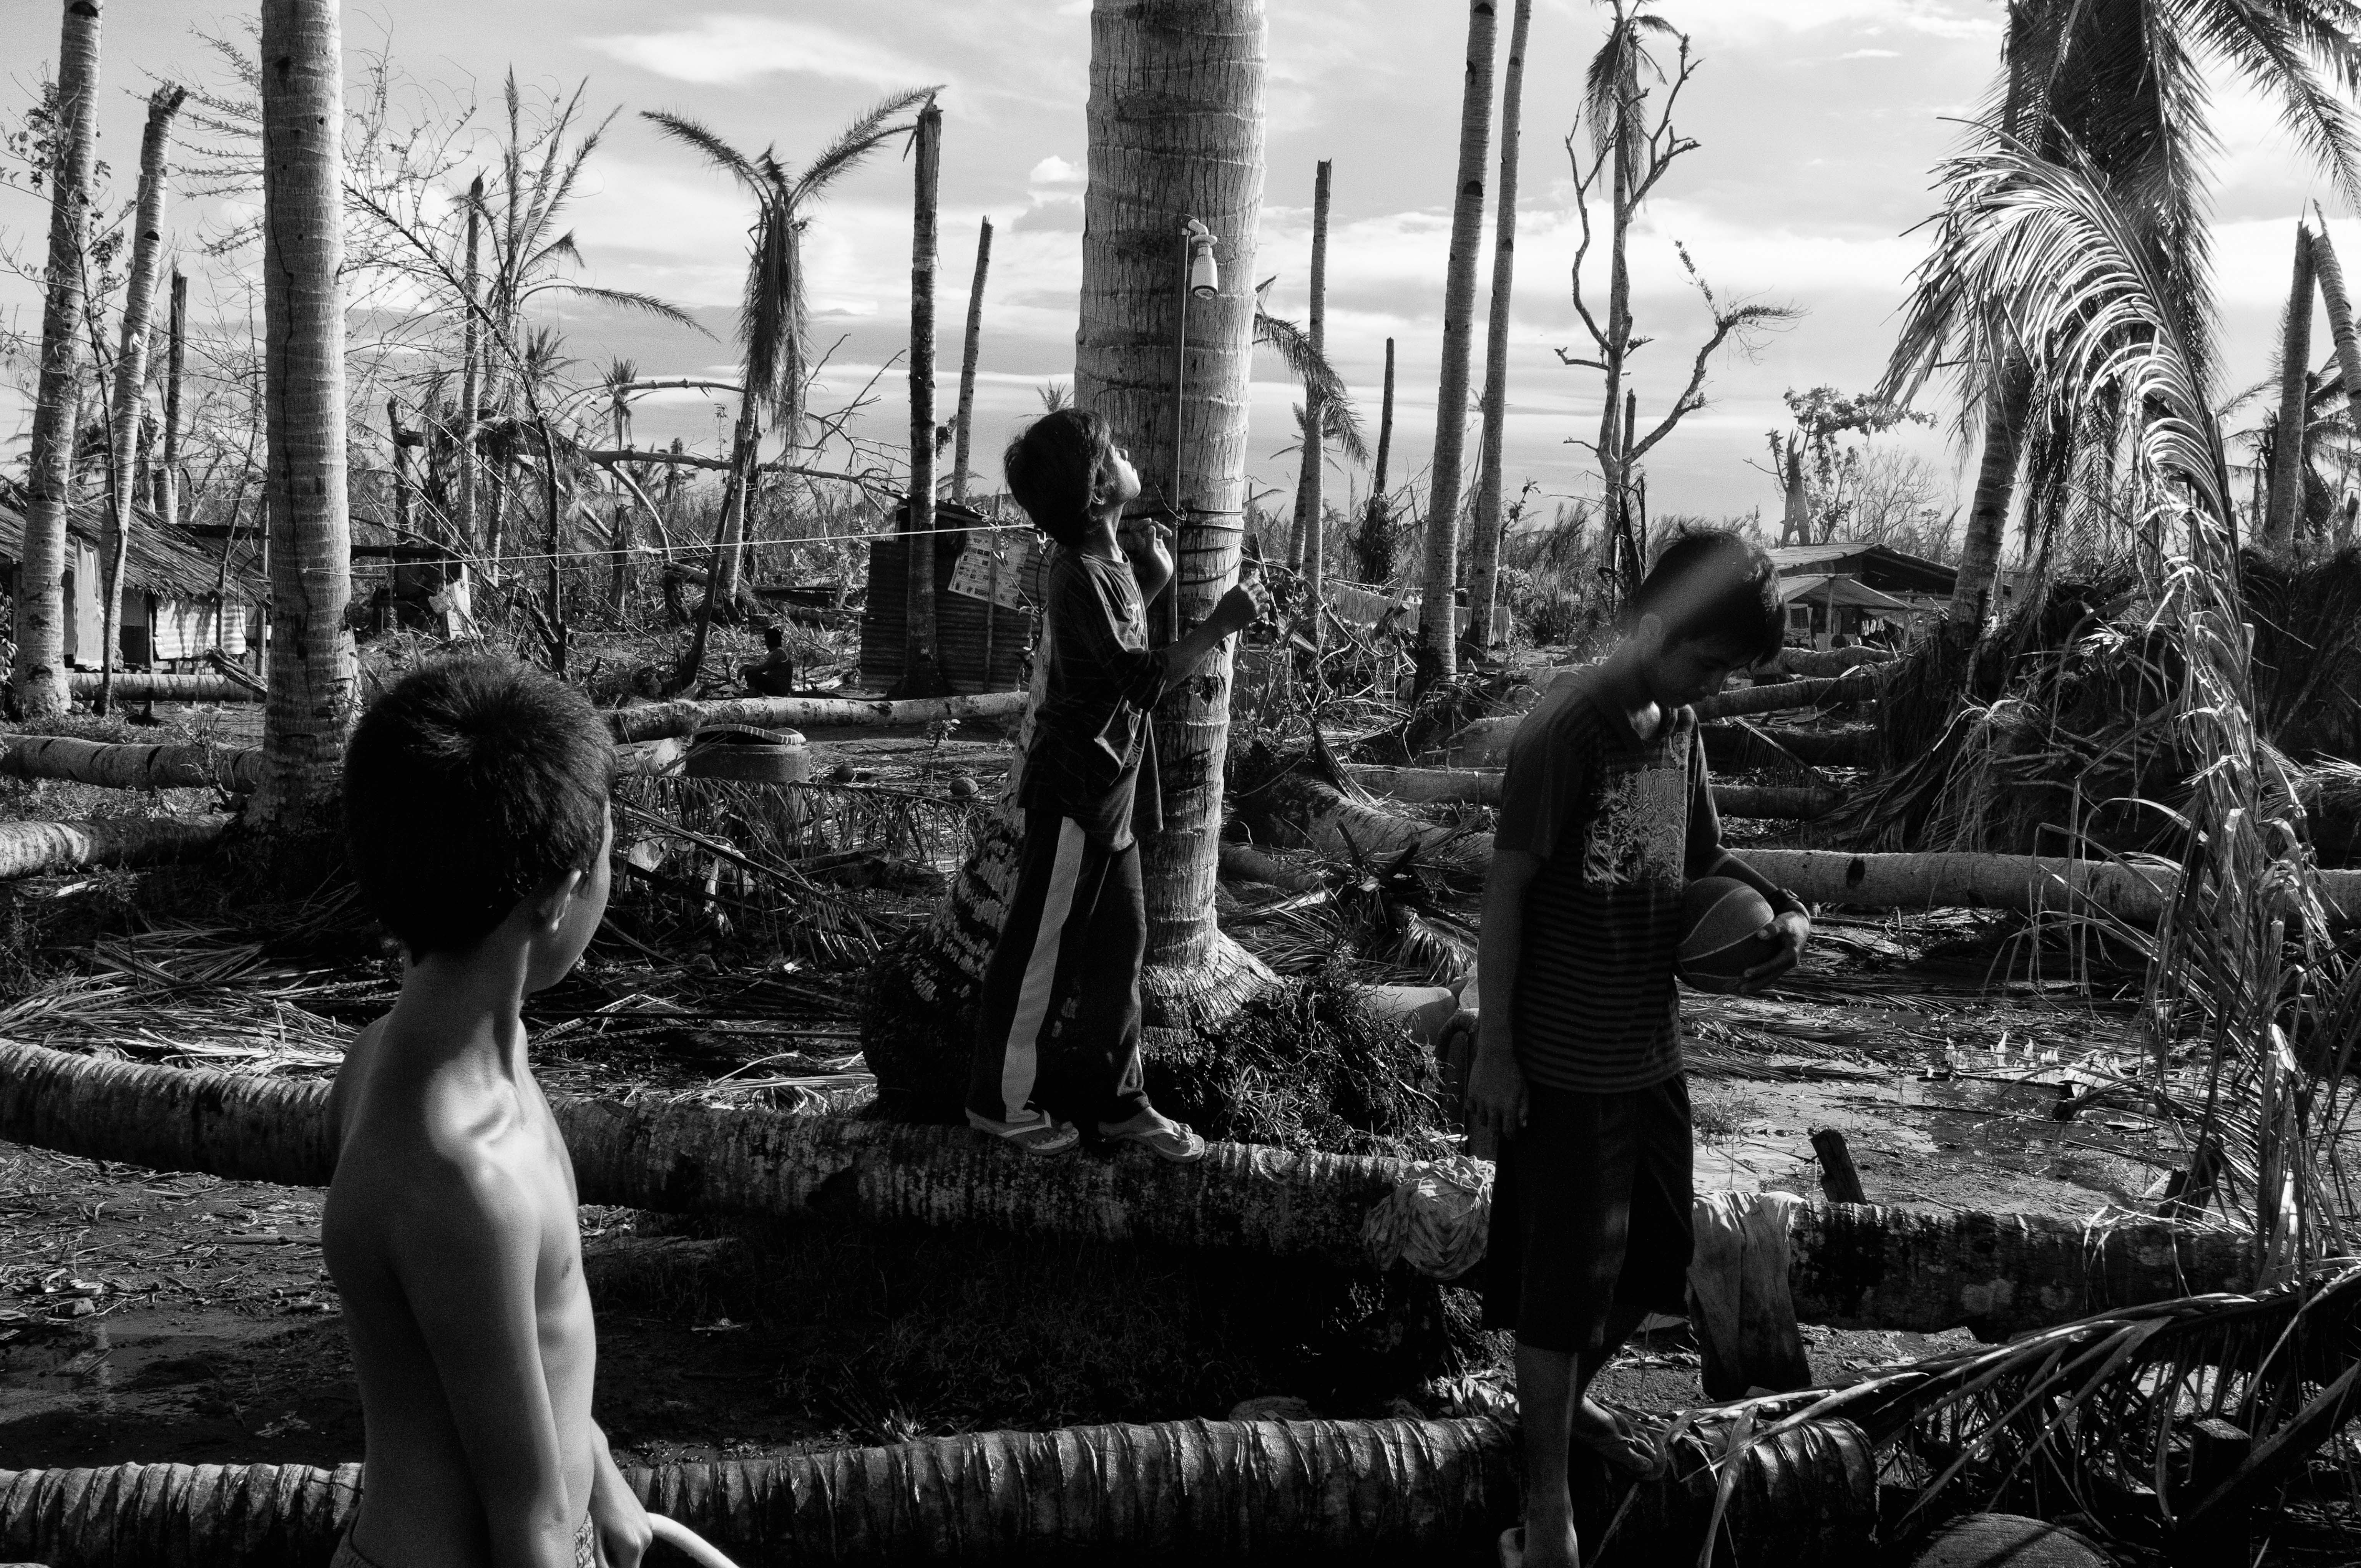 Children play in a damaged village in San Joaquin, Leyte on Dec. 10, 2013.a